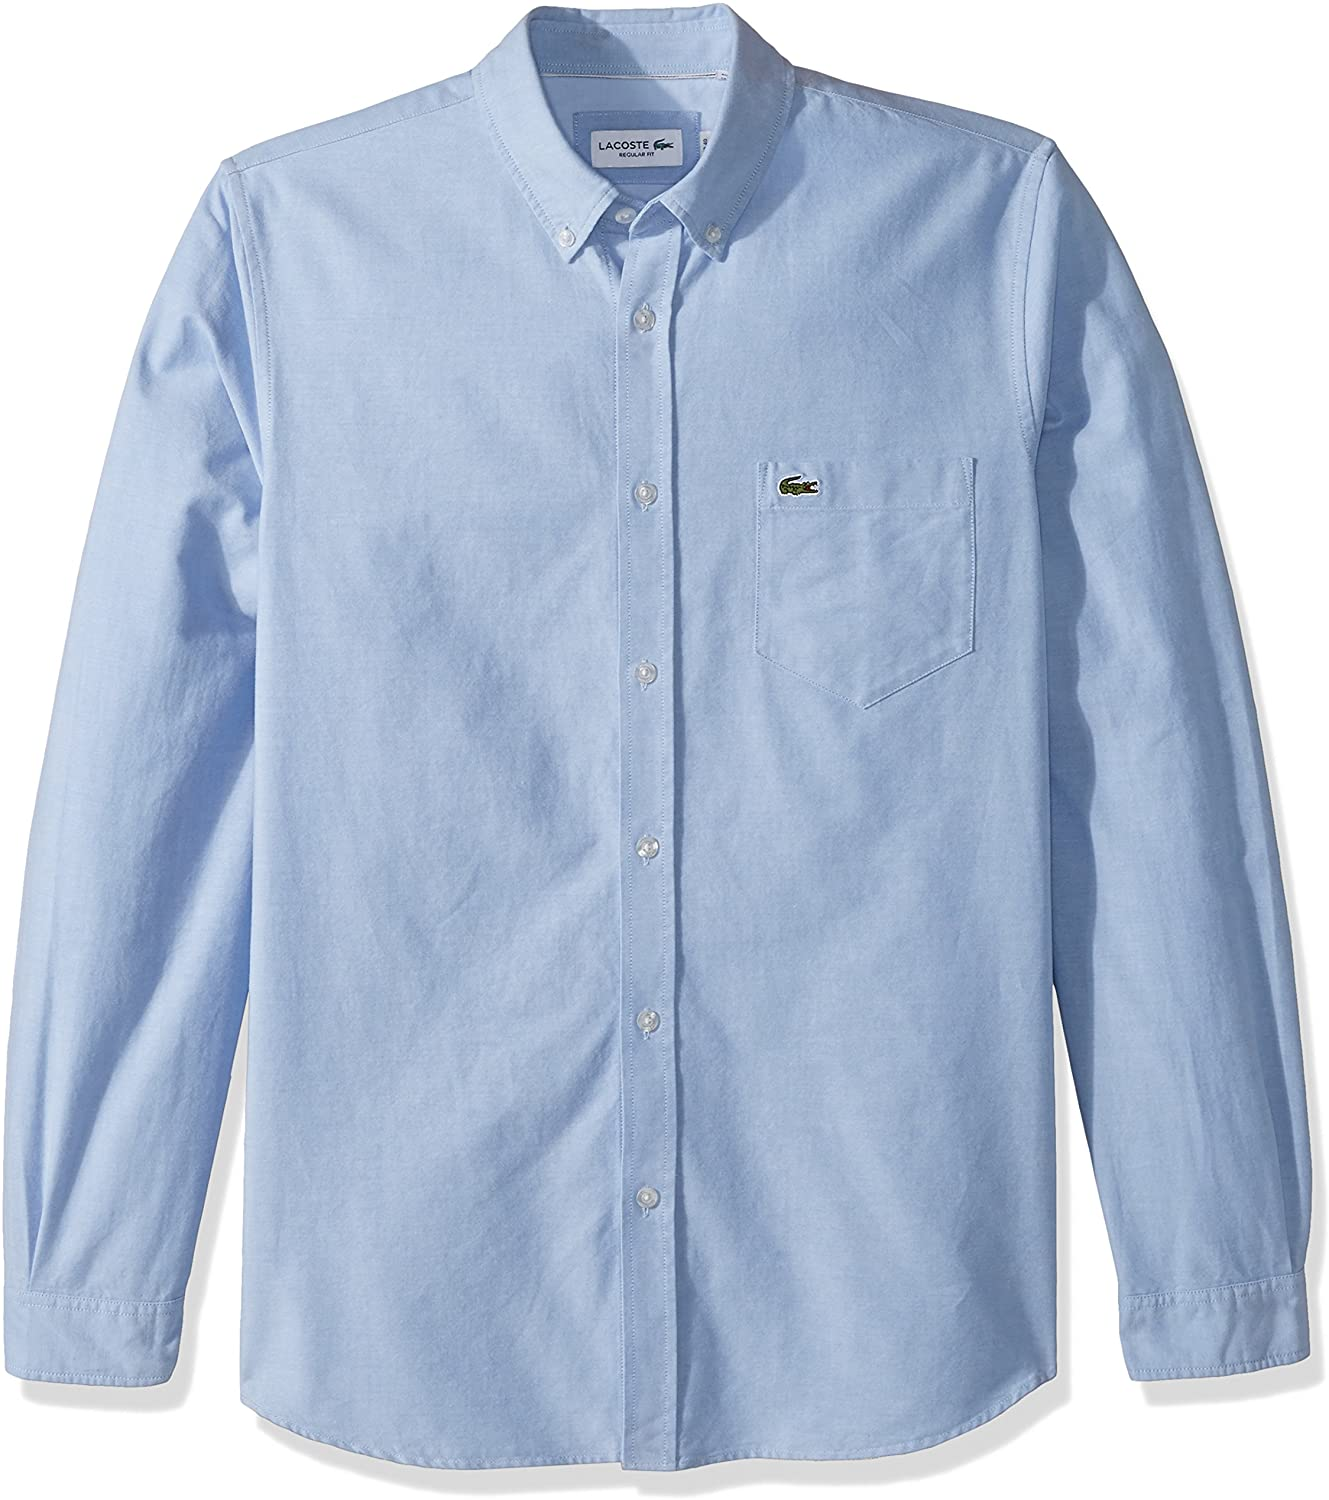 Lacoste Men's Long Sleeve Oxford Collar Regular Fit Woven Button Down Shirt